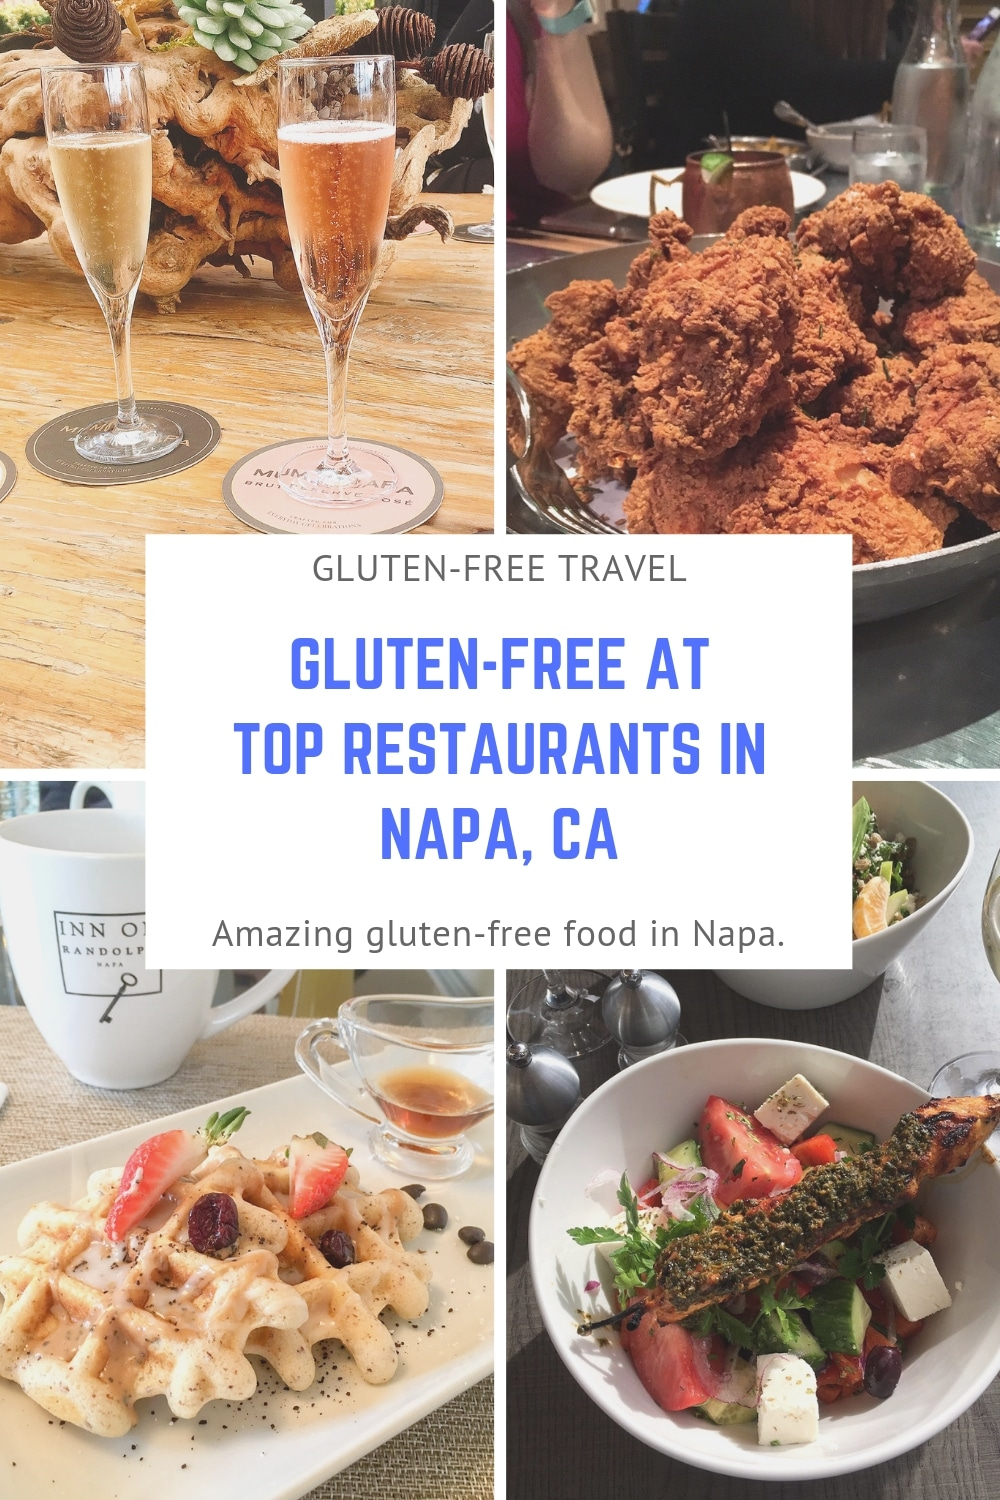 Enjoy amazing gluten-free foods at some of the top restaurants in Napa, CA.